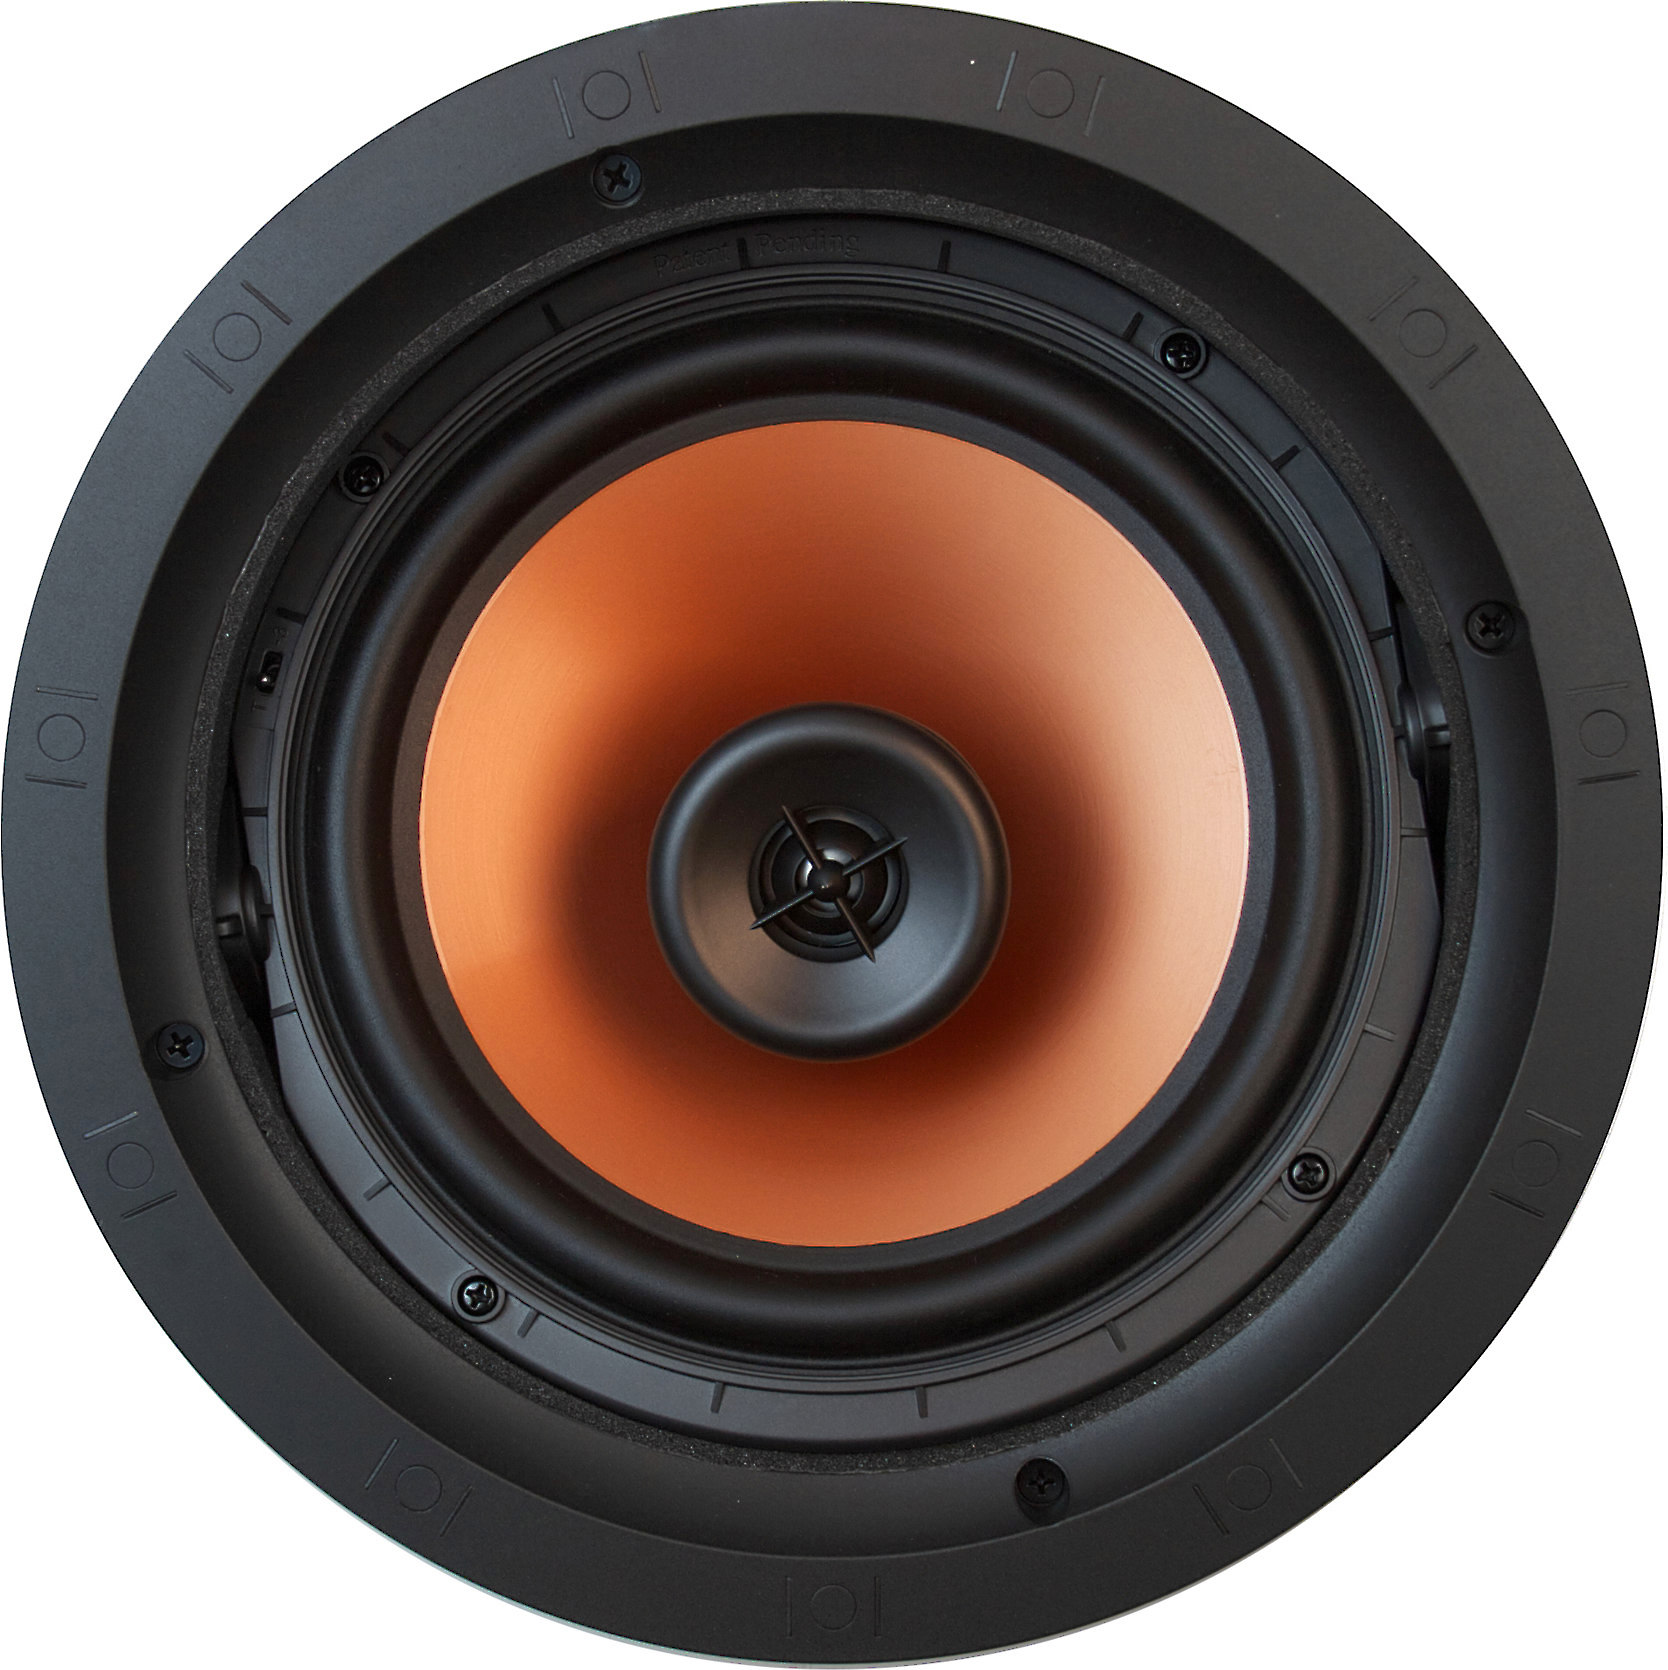 Brand New Klipsch CDT-3800-C II In-Ceiling Speaker